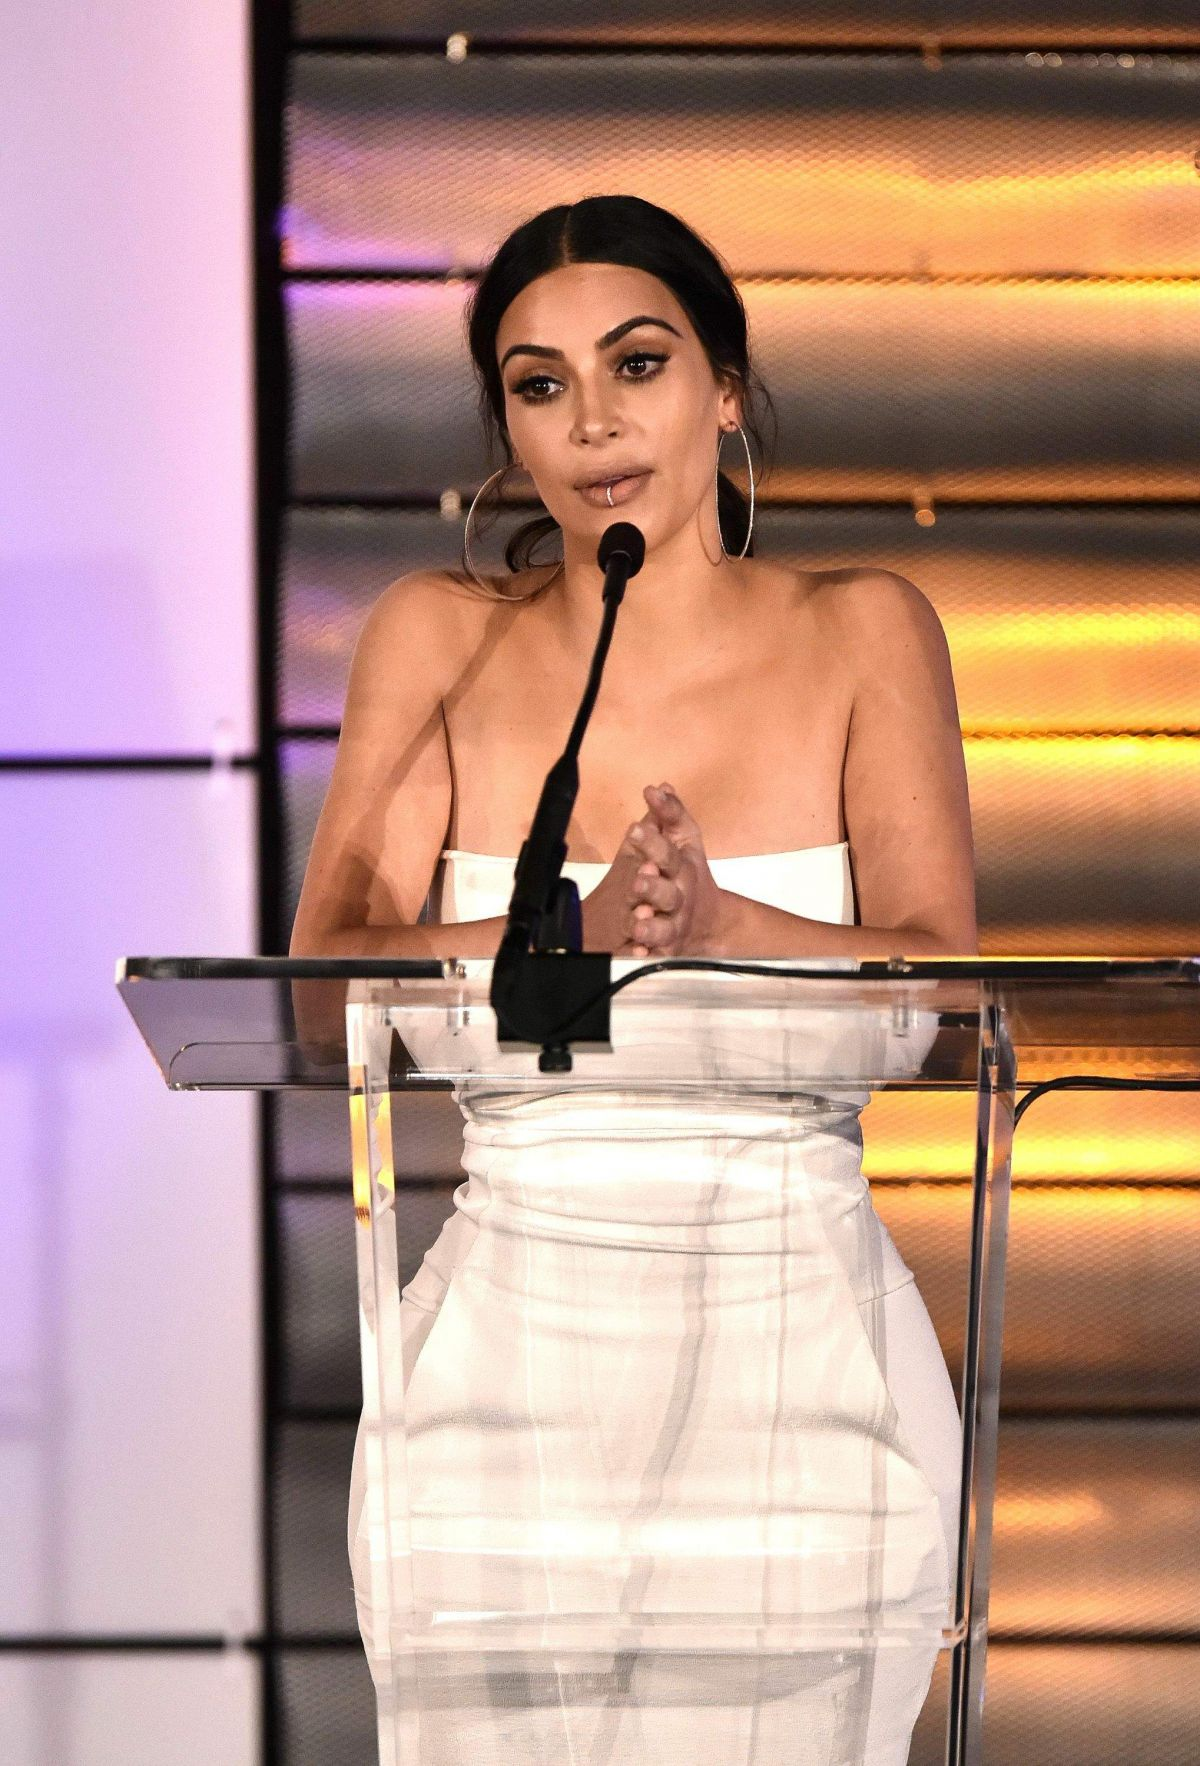 KIM KARDASHIAN at Family Equality Council